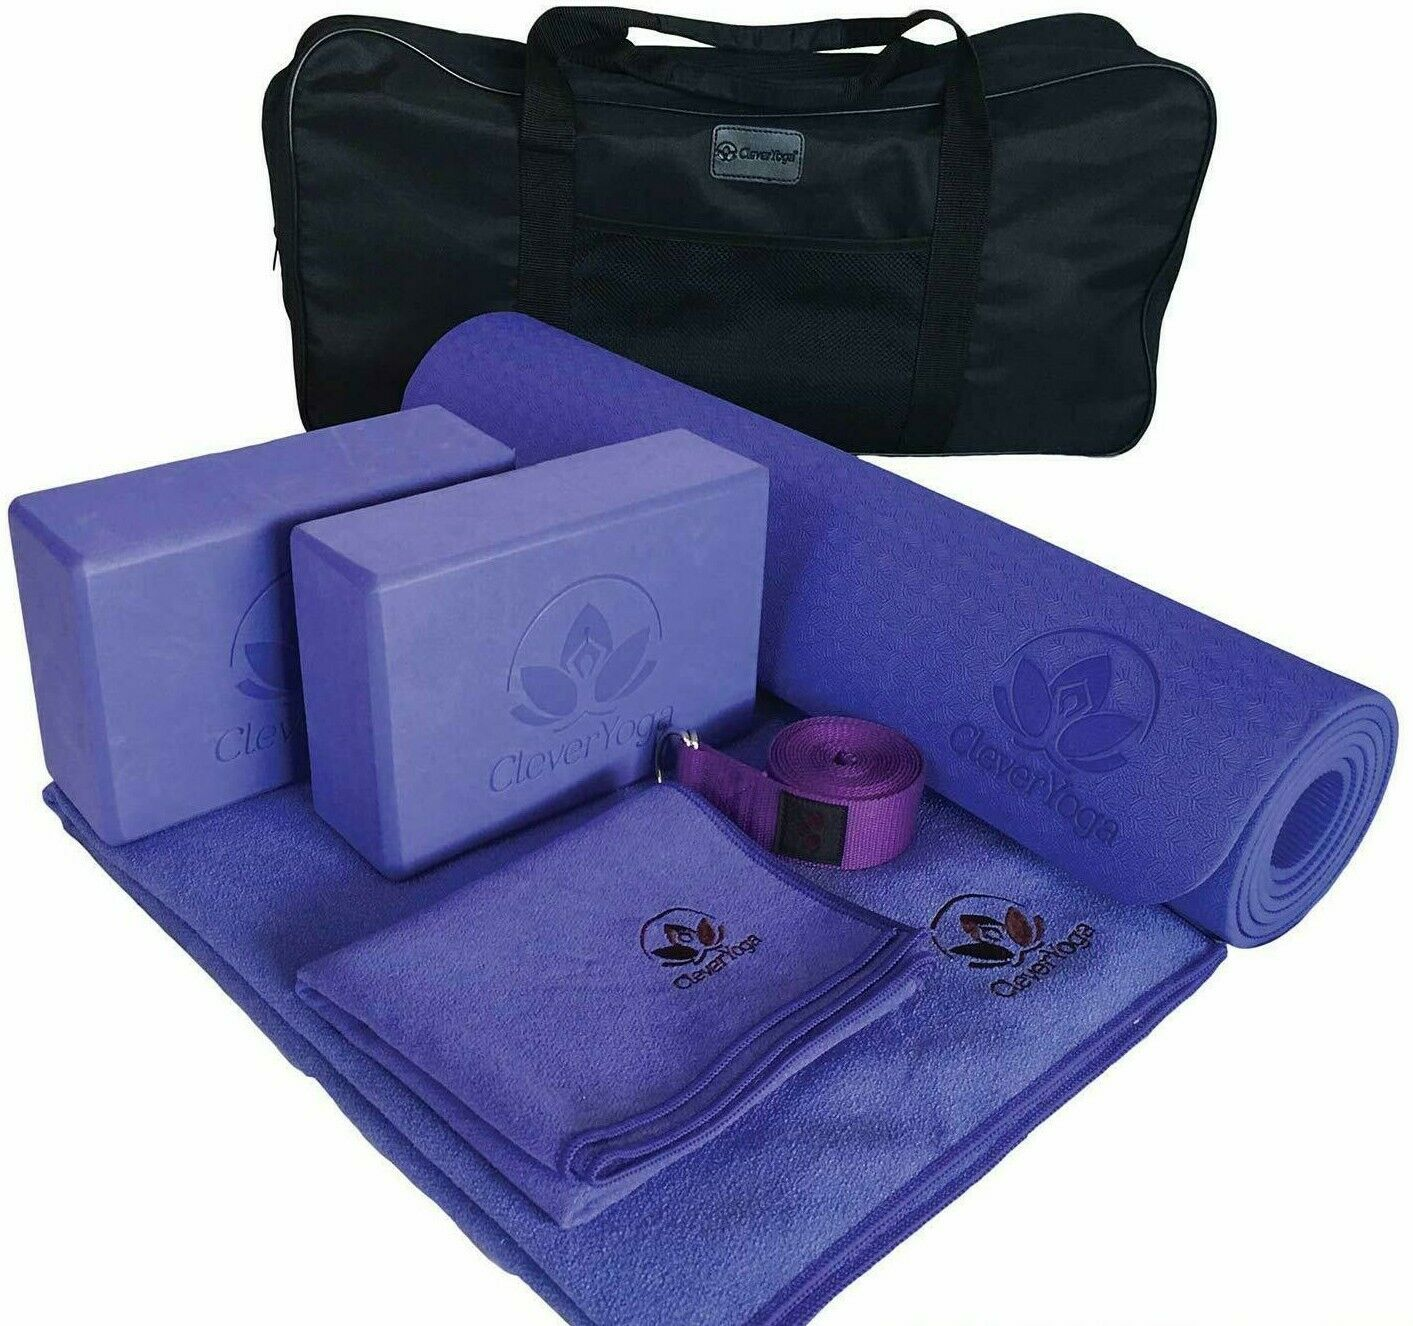 Yoga Set Kit 7-Piece Yoga Mat, Towel, 2 Blocks,Strap, Hand Towel Case Hot Birkam